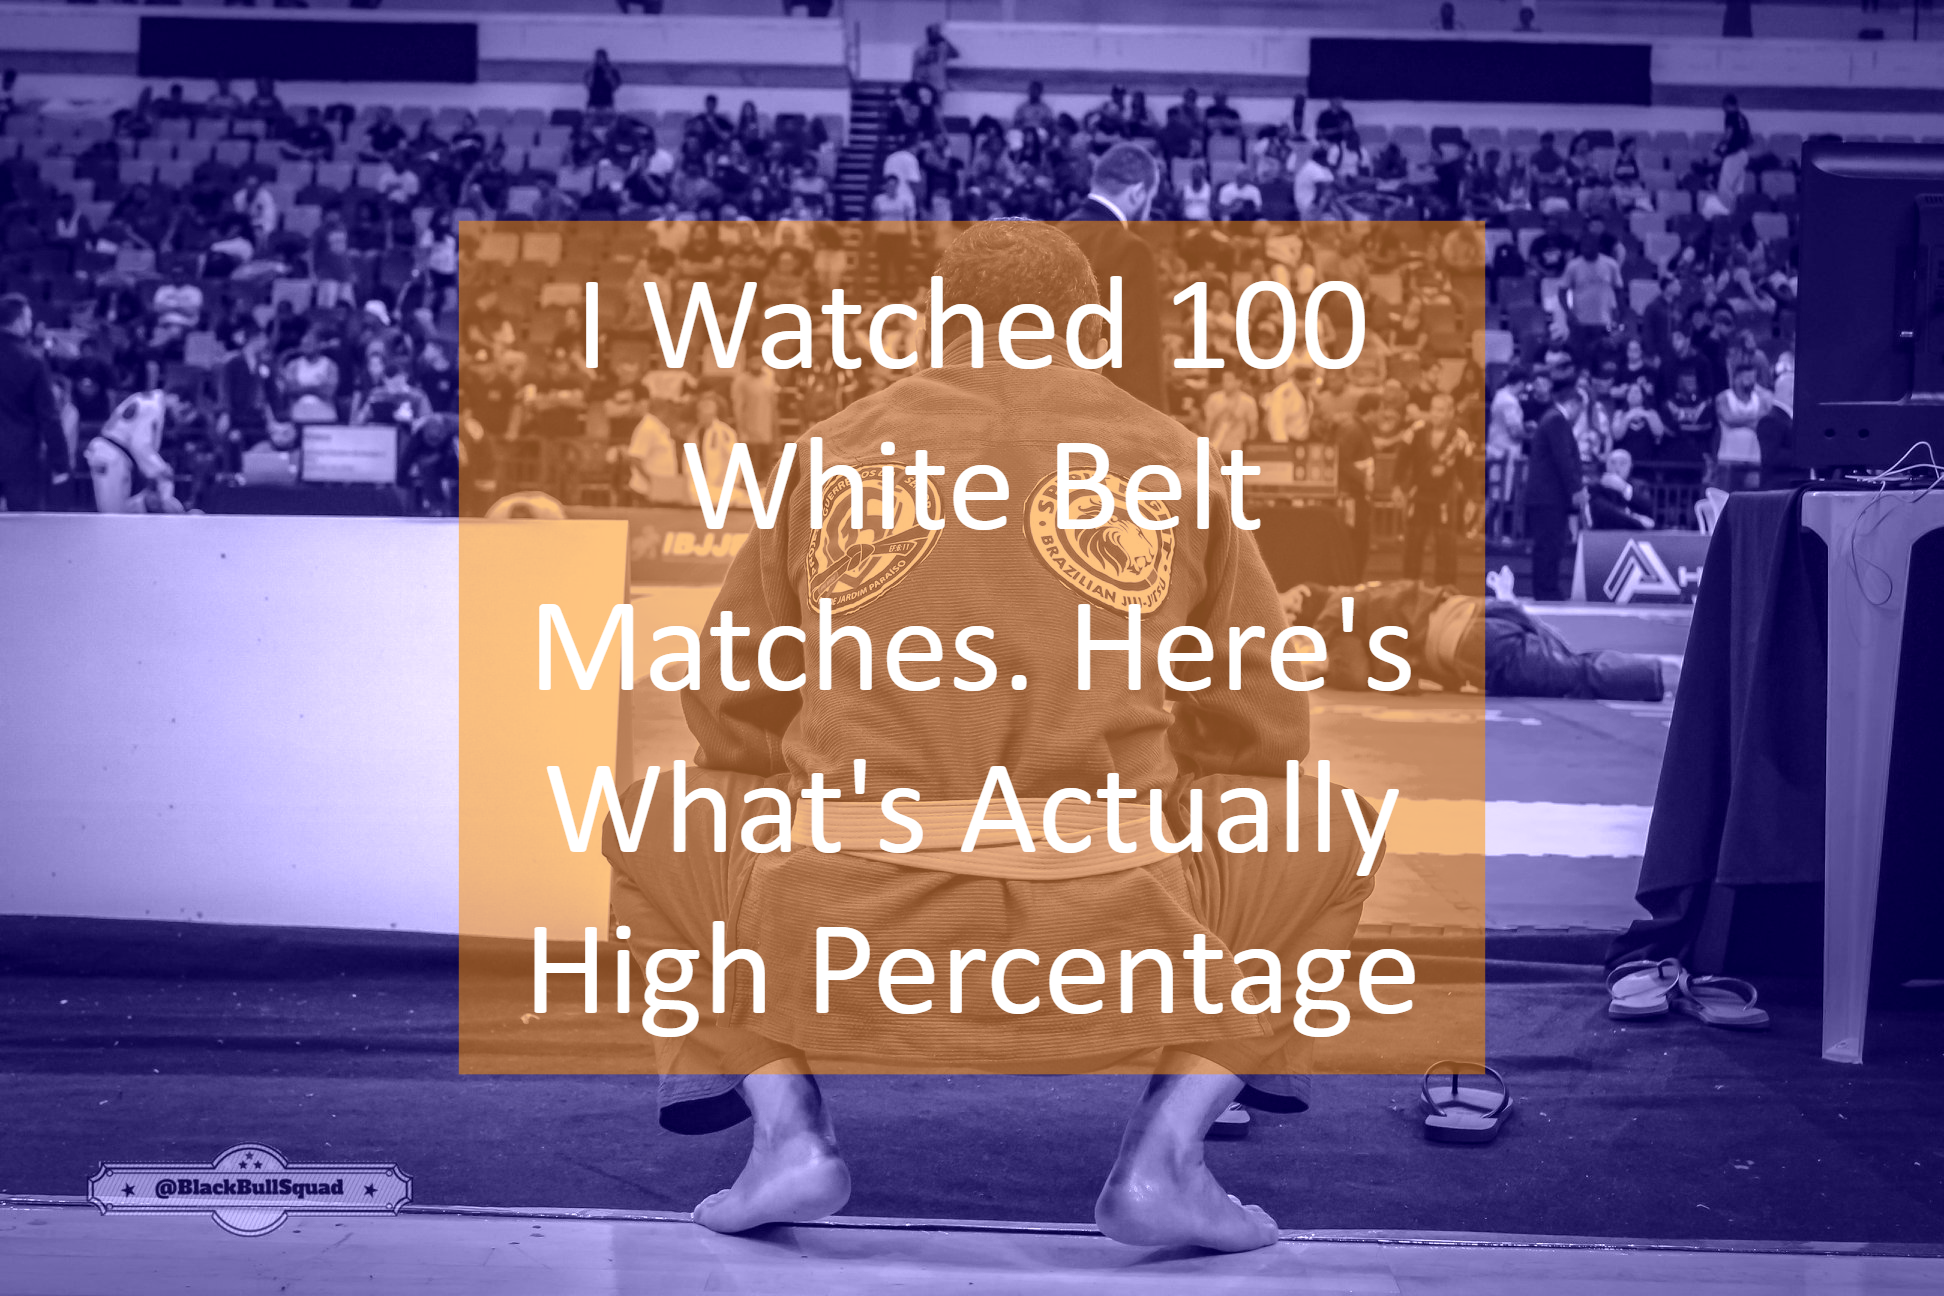 I Watched 100 White Belt Matches  Here's What's Actually High